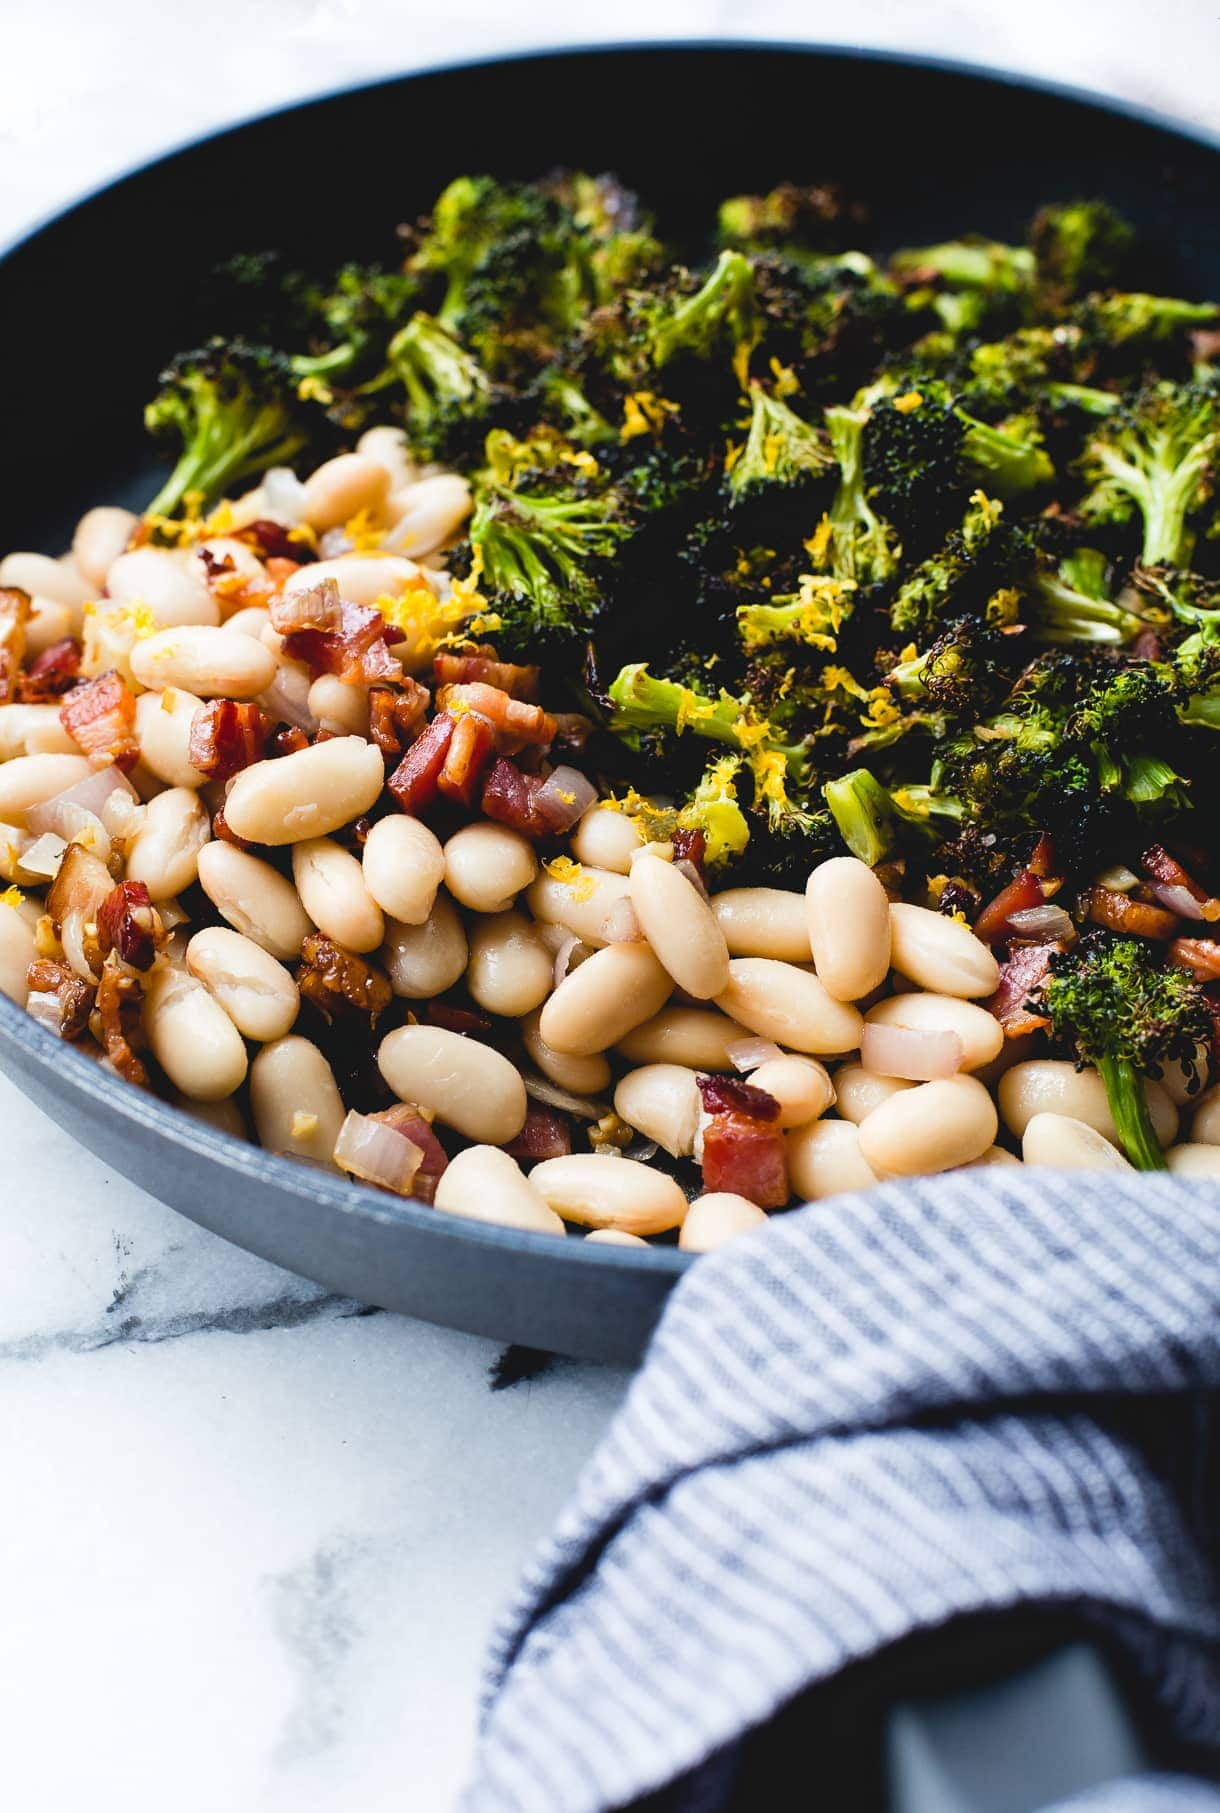 Great Northern Beans Recipe with Lemon Roasted Broccoli and Bacon